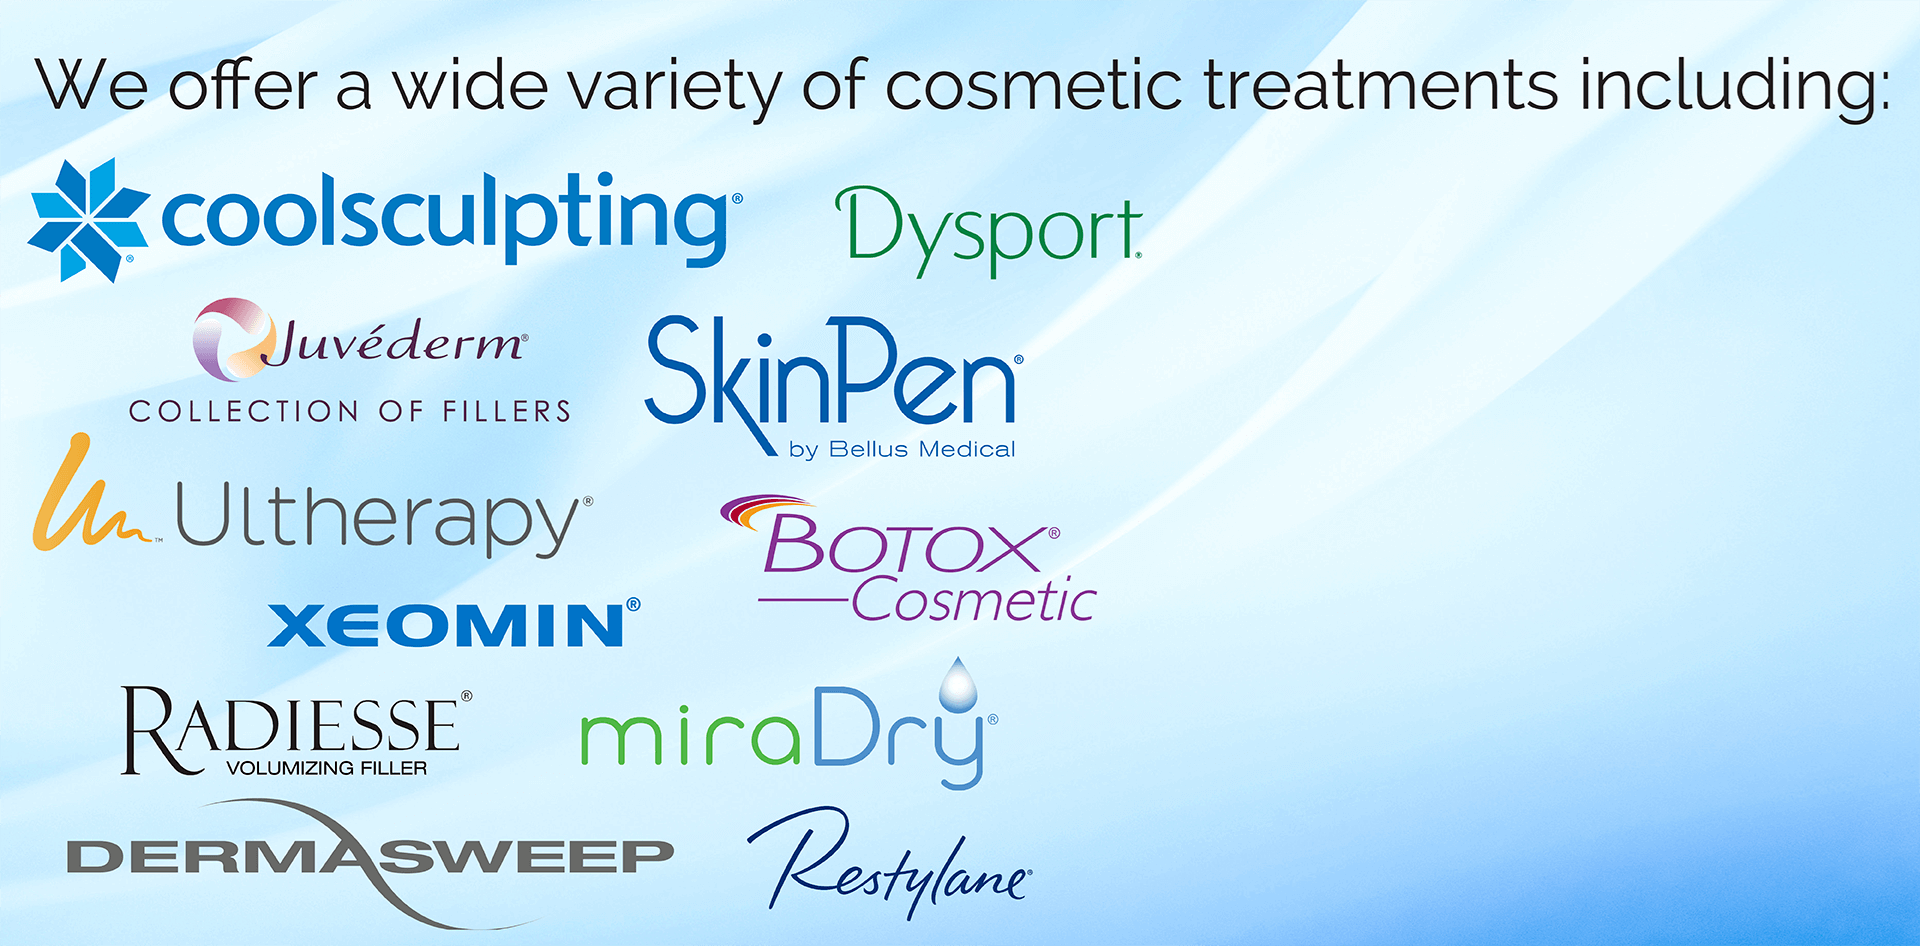 And more! - Visit our procedures page for a full list of procedures and treatments available